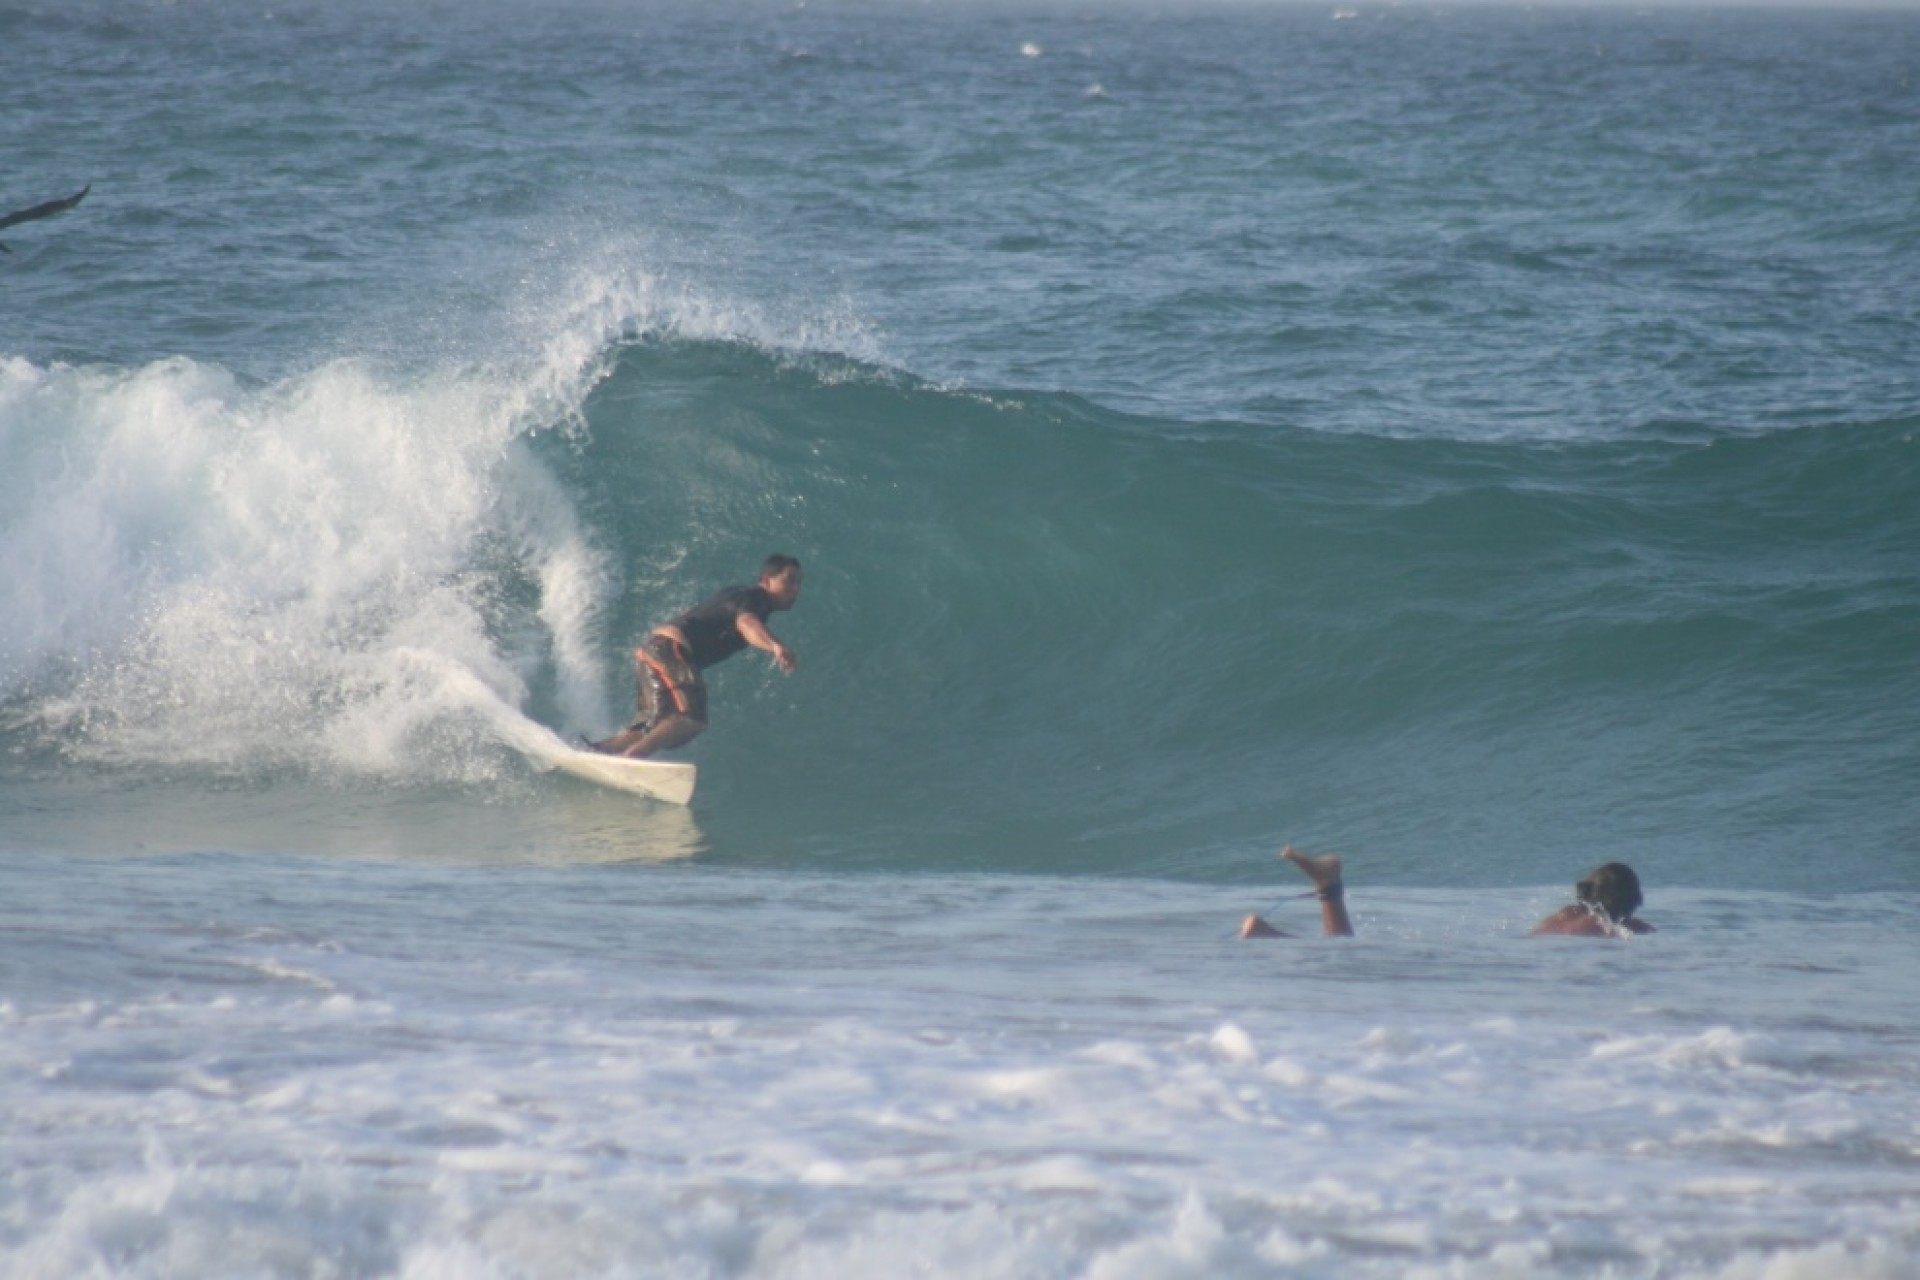 wilmer's photo of Playa Parguito